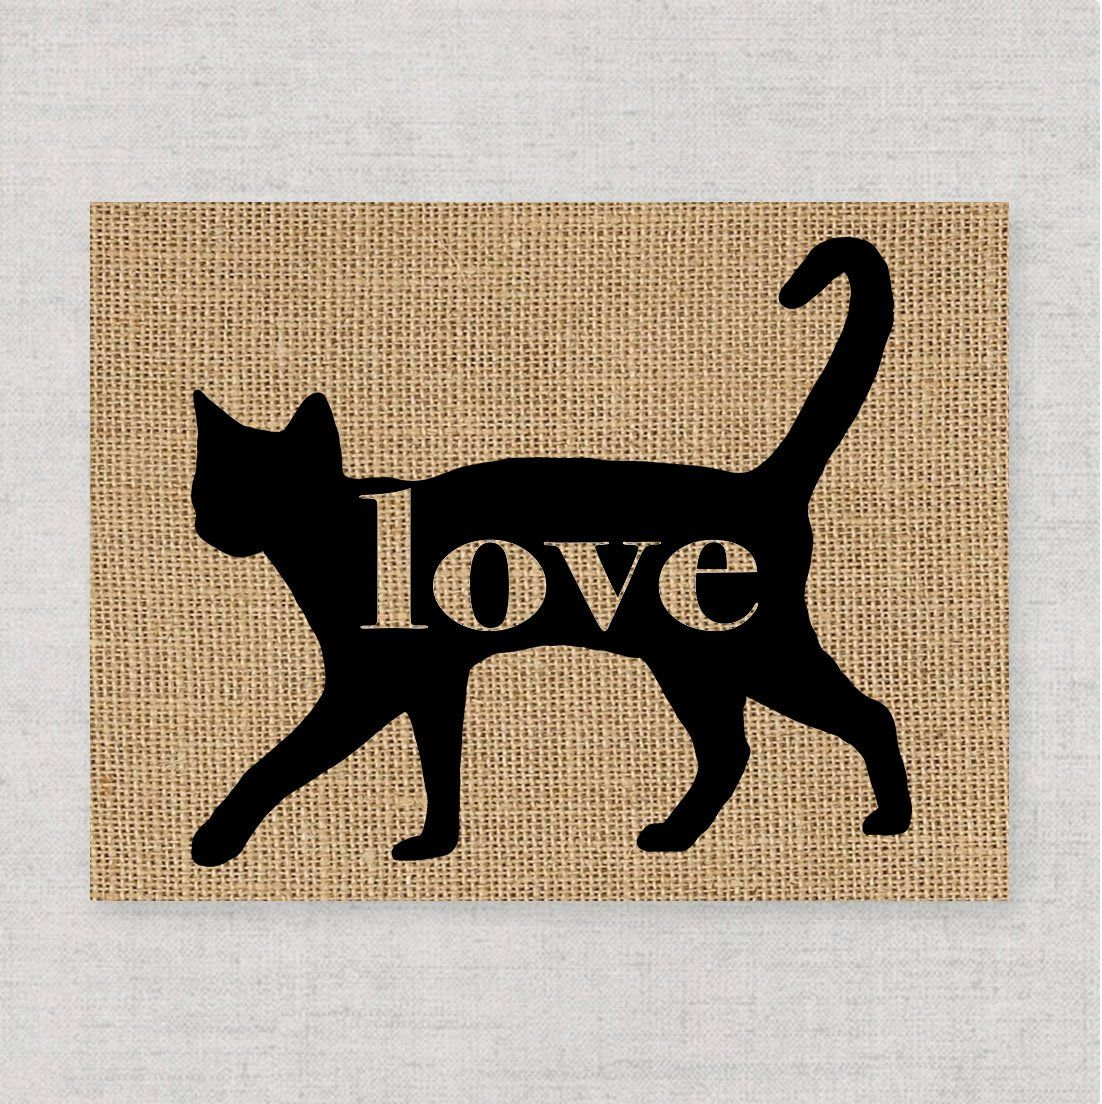 Russian Blue Cat Love: An Unframed 8x10 Cat Breed Wall Art Print on ...